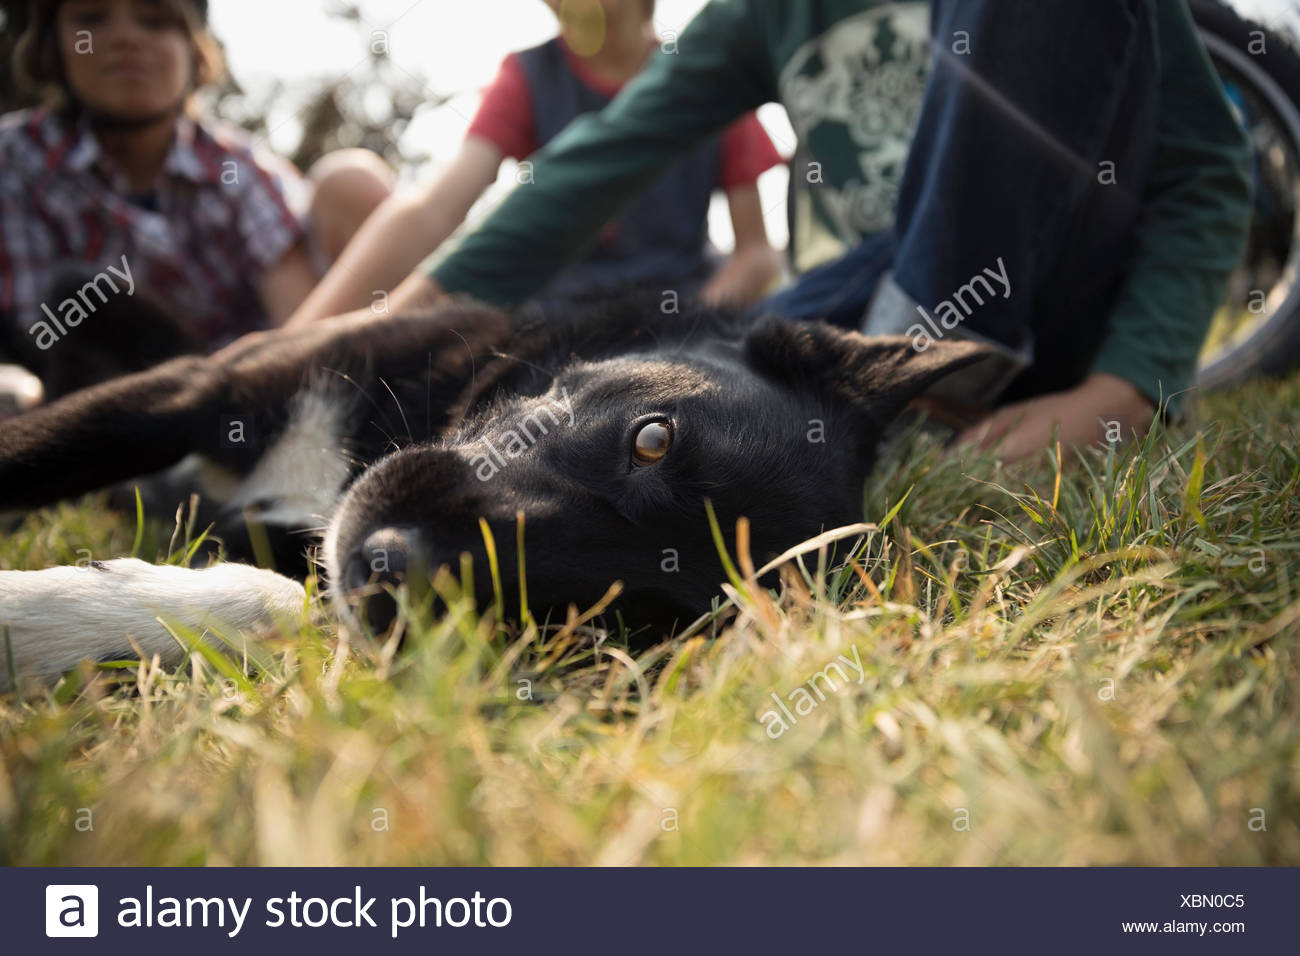 Portrait black and white dog laying in grass - Stock Image